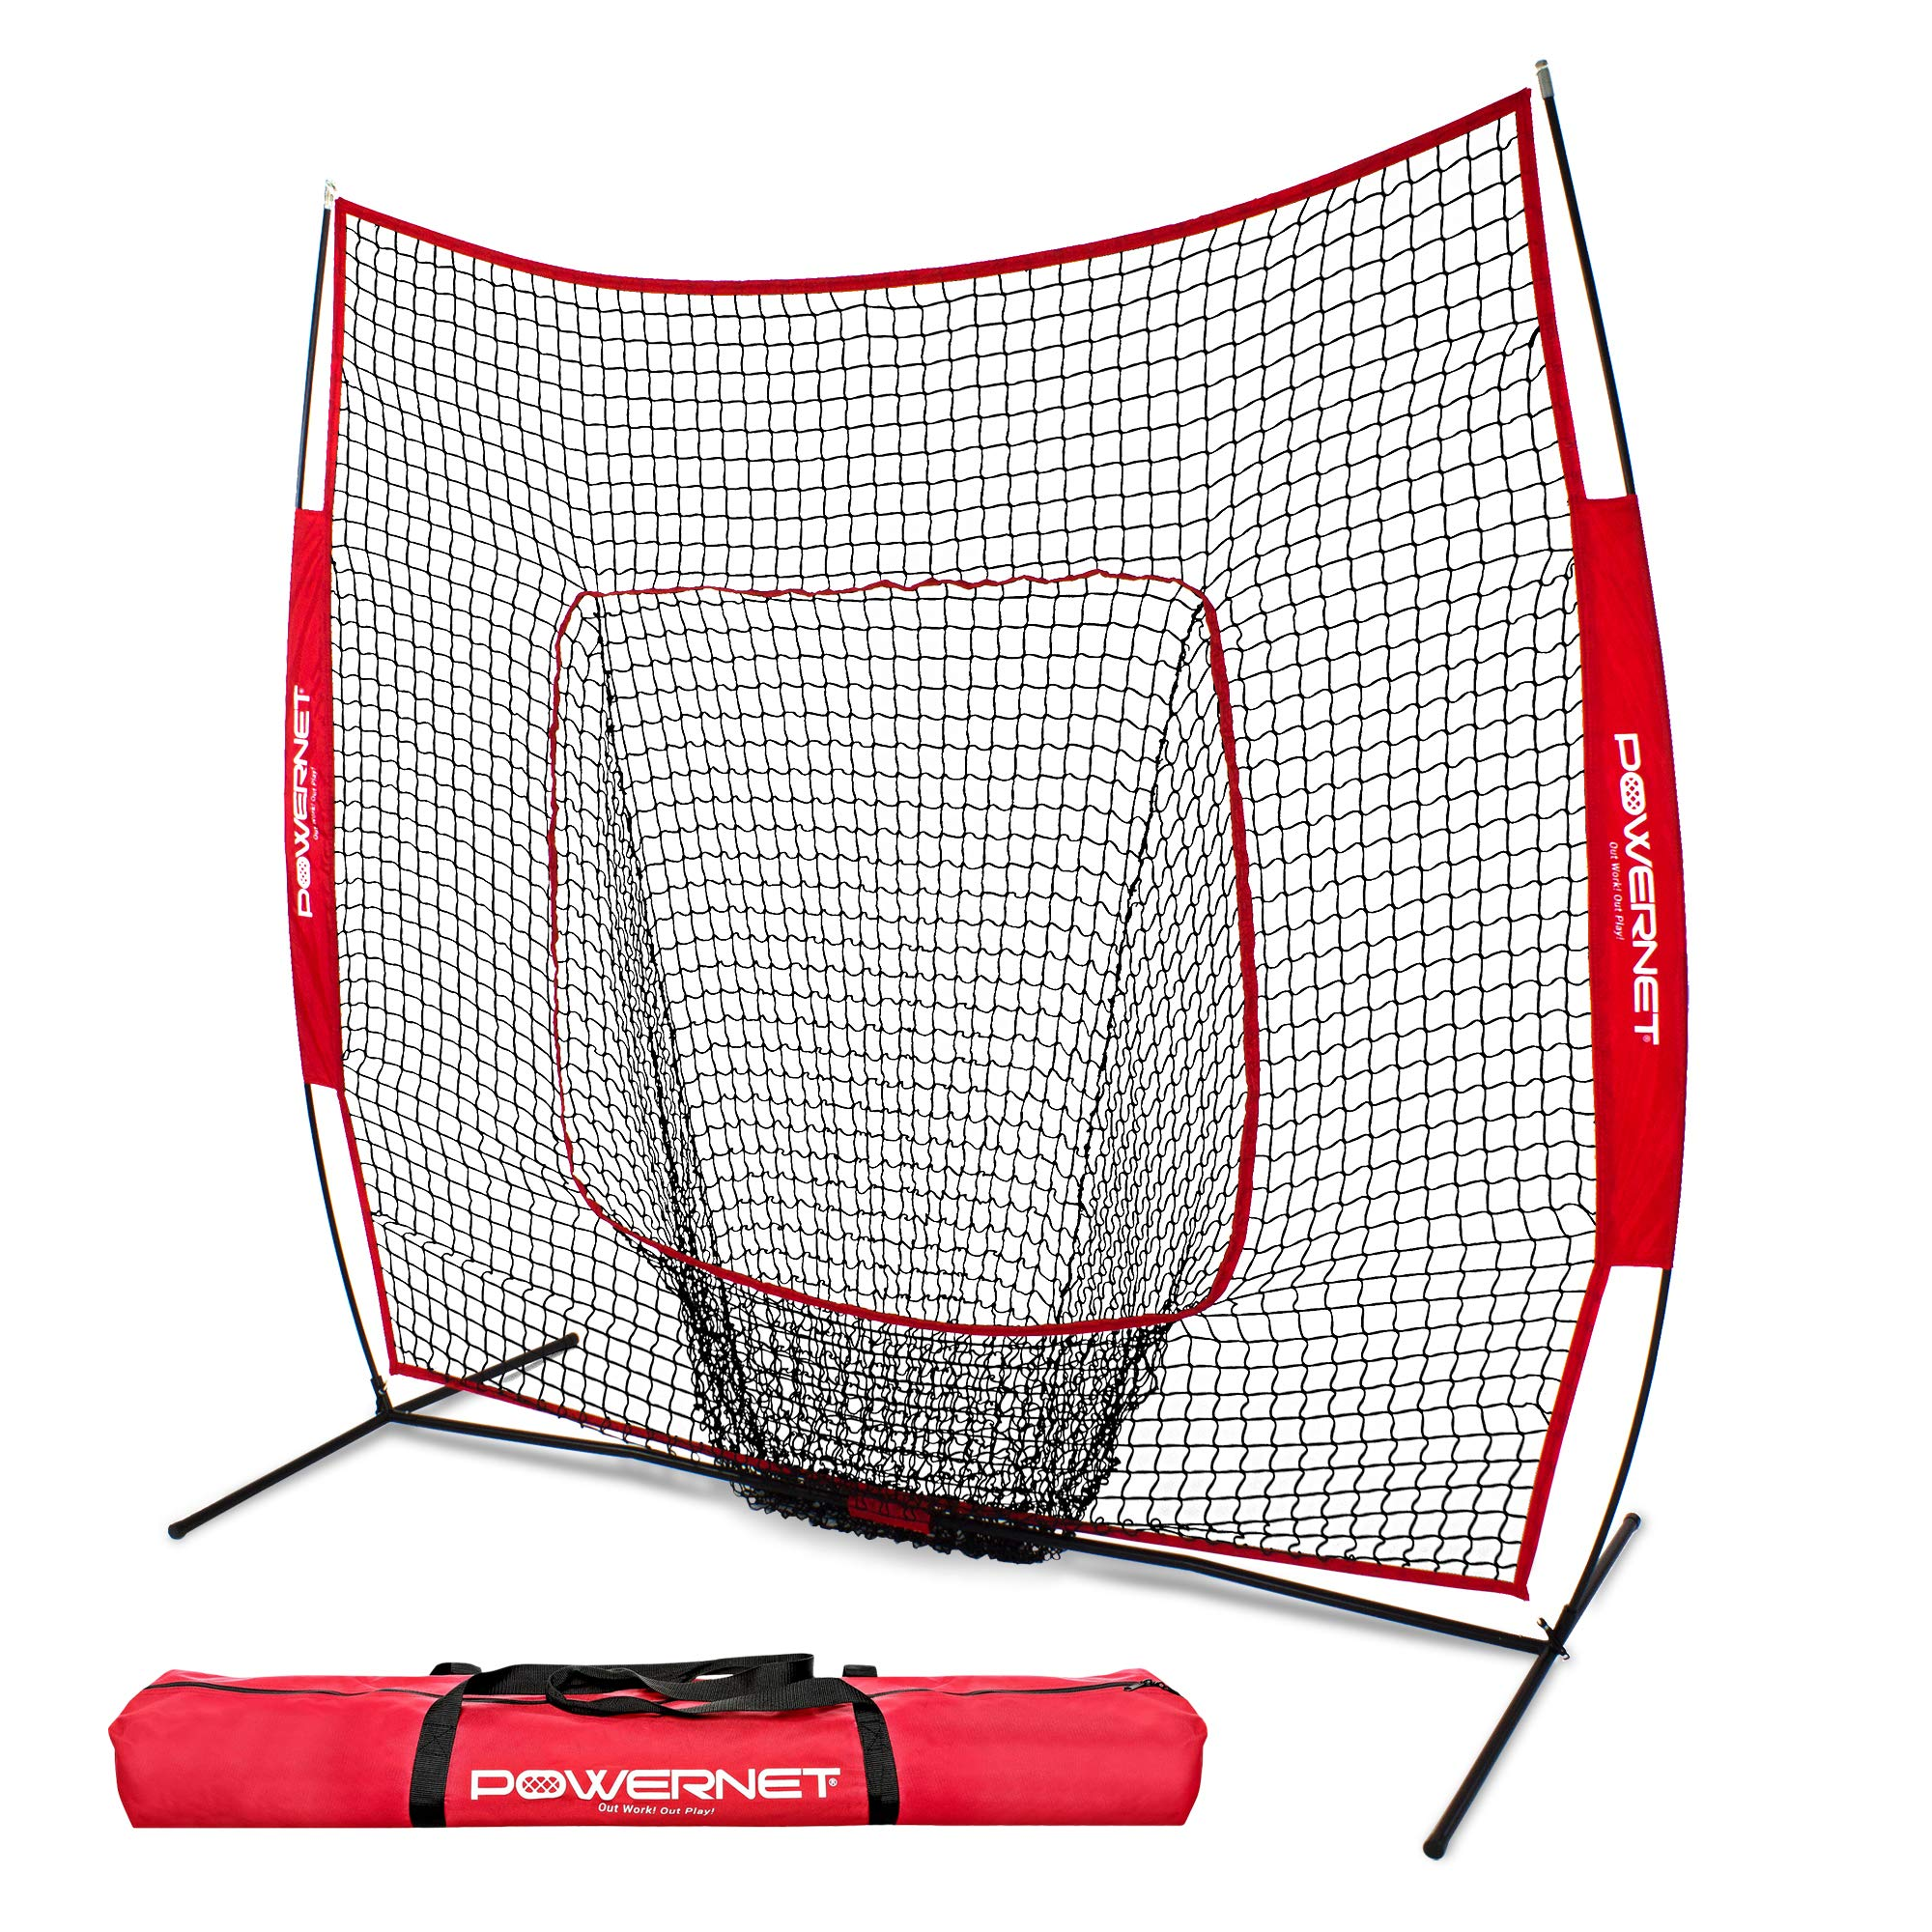 PowerNet Baseball and Softball Practice Net 7 x 7 with bow frame by PowerNet (Image #1)